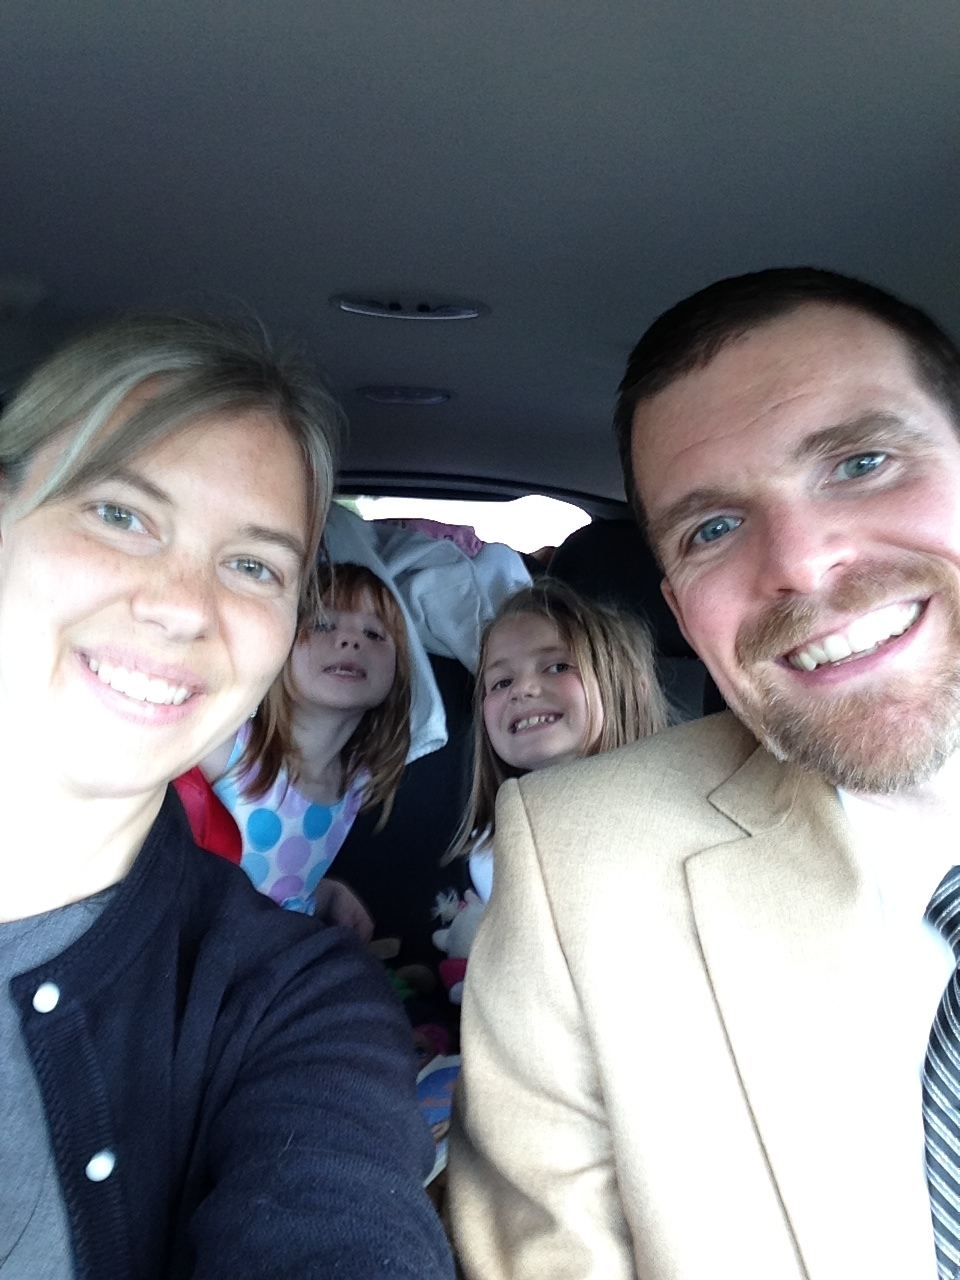 An old photo of us as we prepare for an epic road trip. Note the luggage piled in the back. Also, no, we don't dress up for road trips, we just happened to be heading out straight after church.